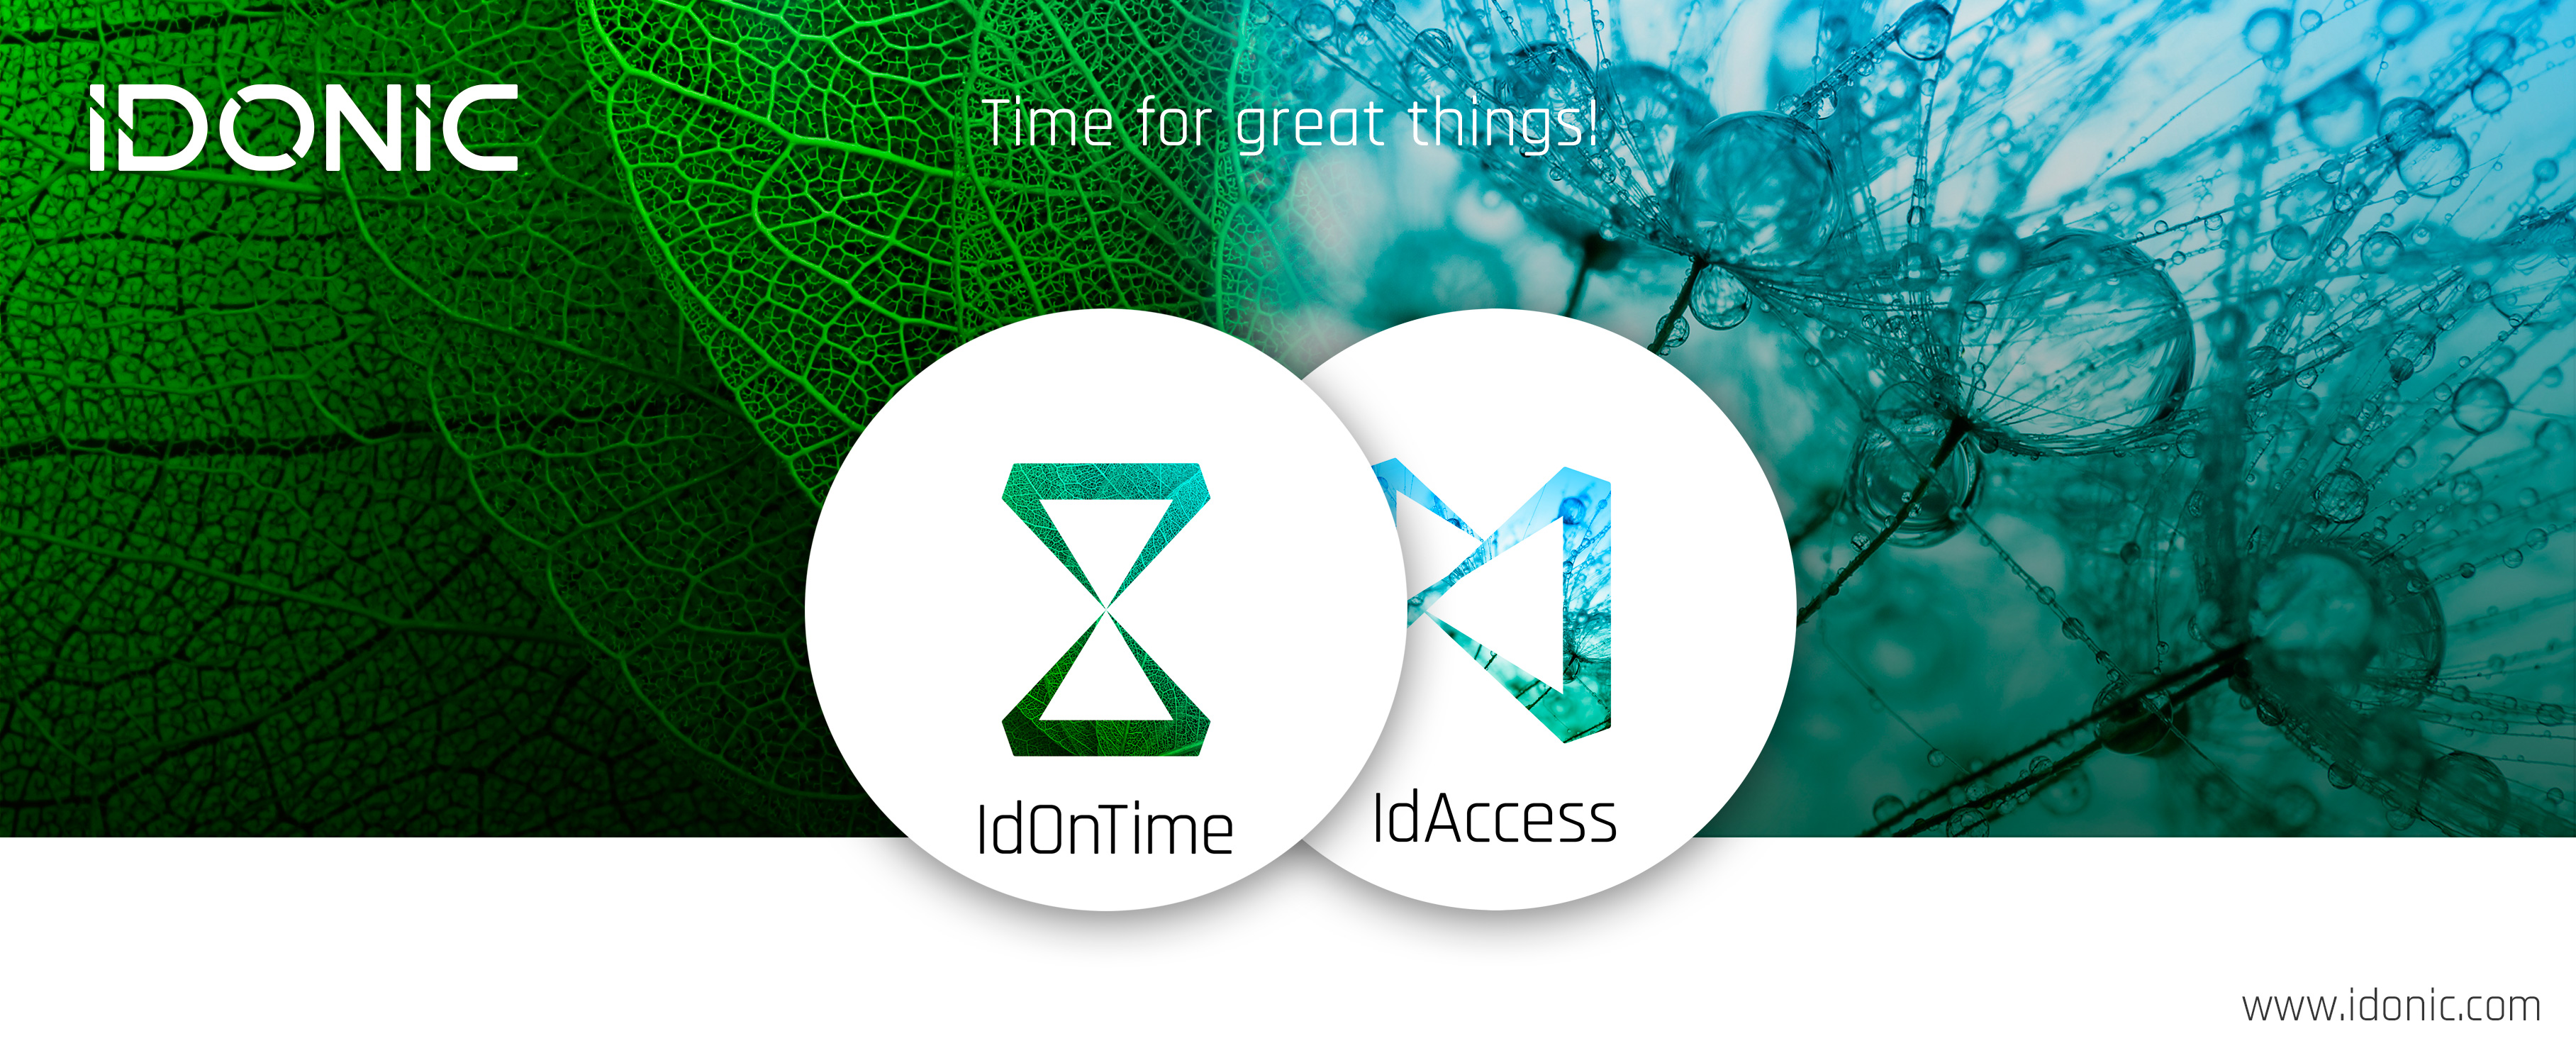 idonic-idontime-idaccess